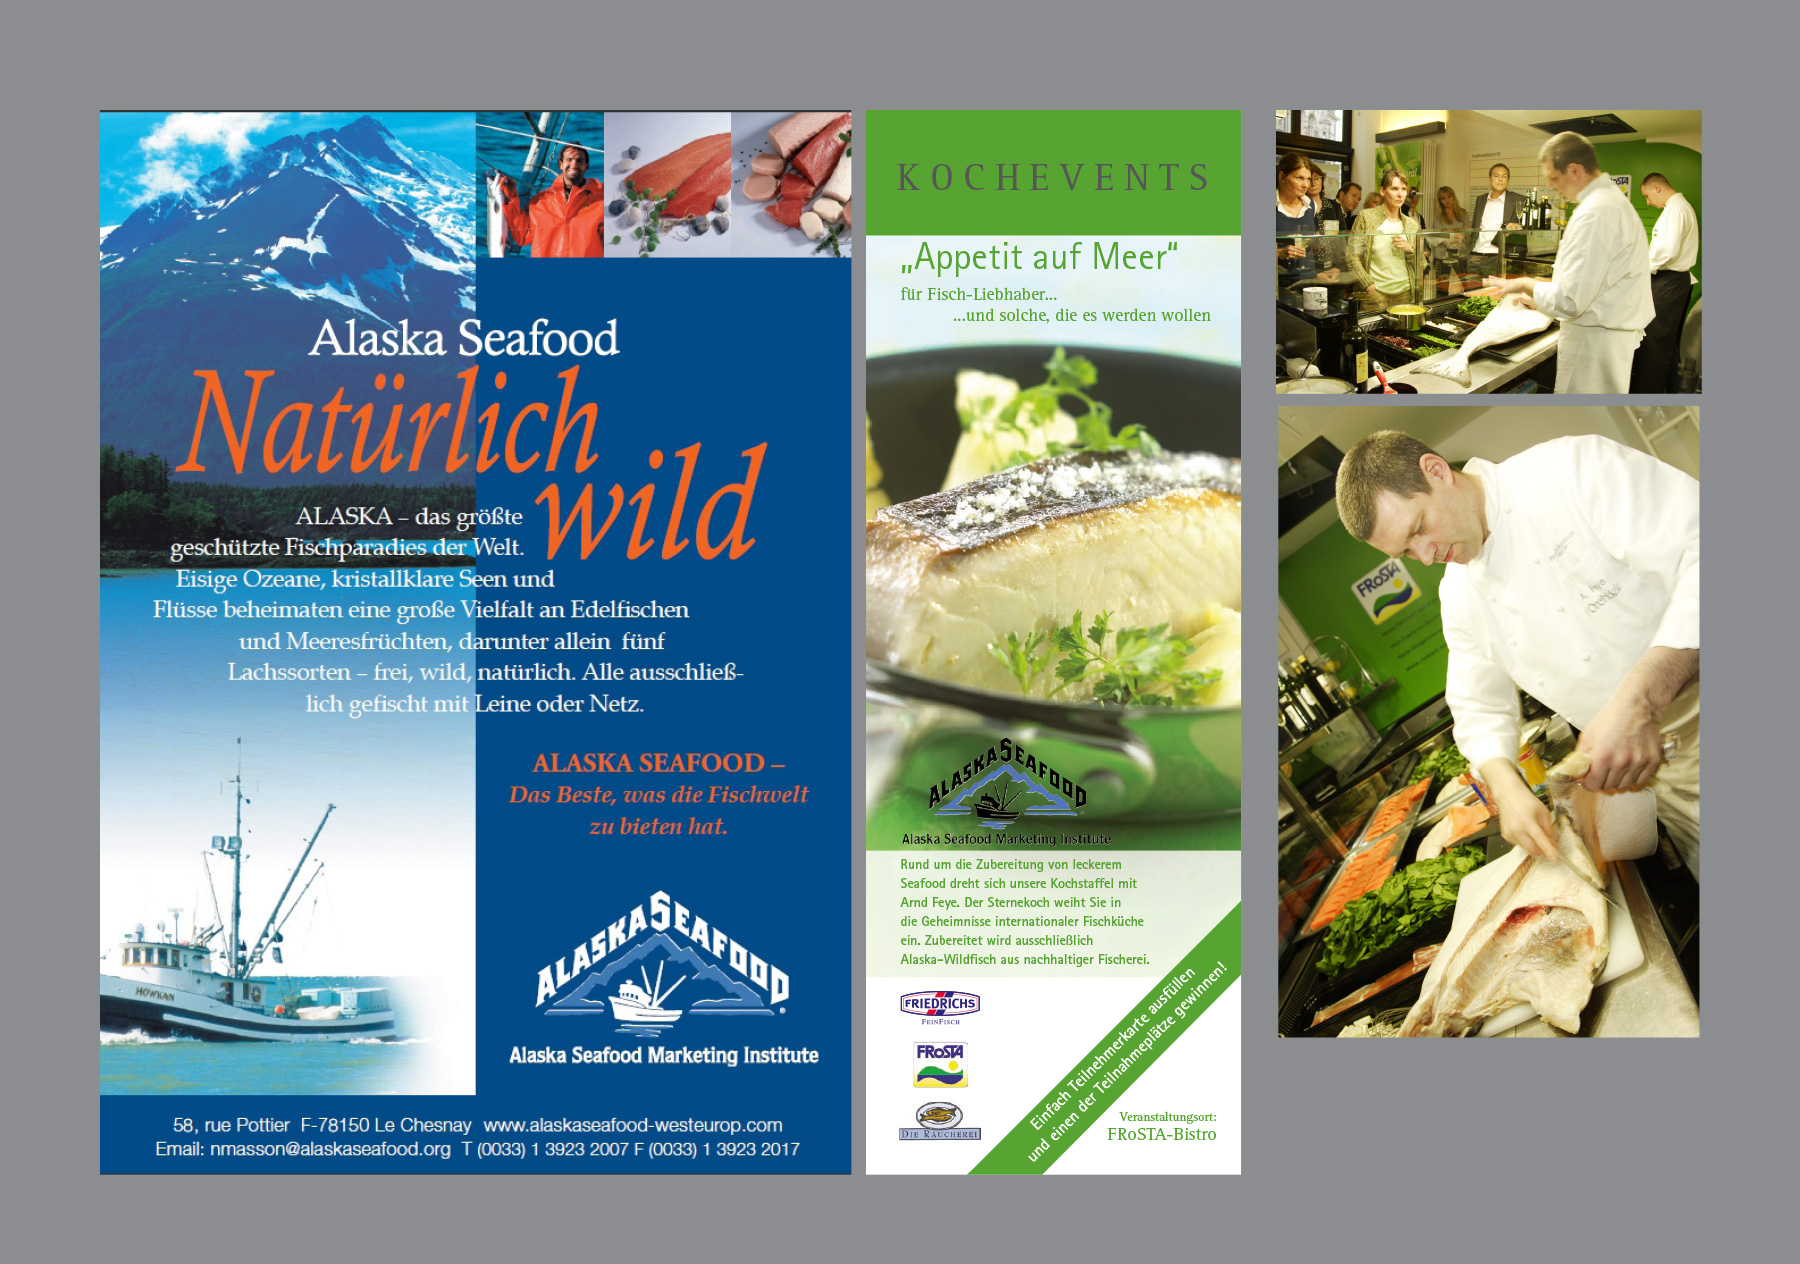 Alaska Seafood Marketing Institute - Marketing-Events und Anzeigen